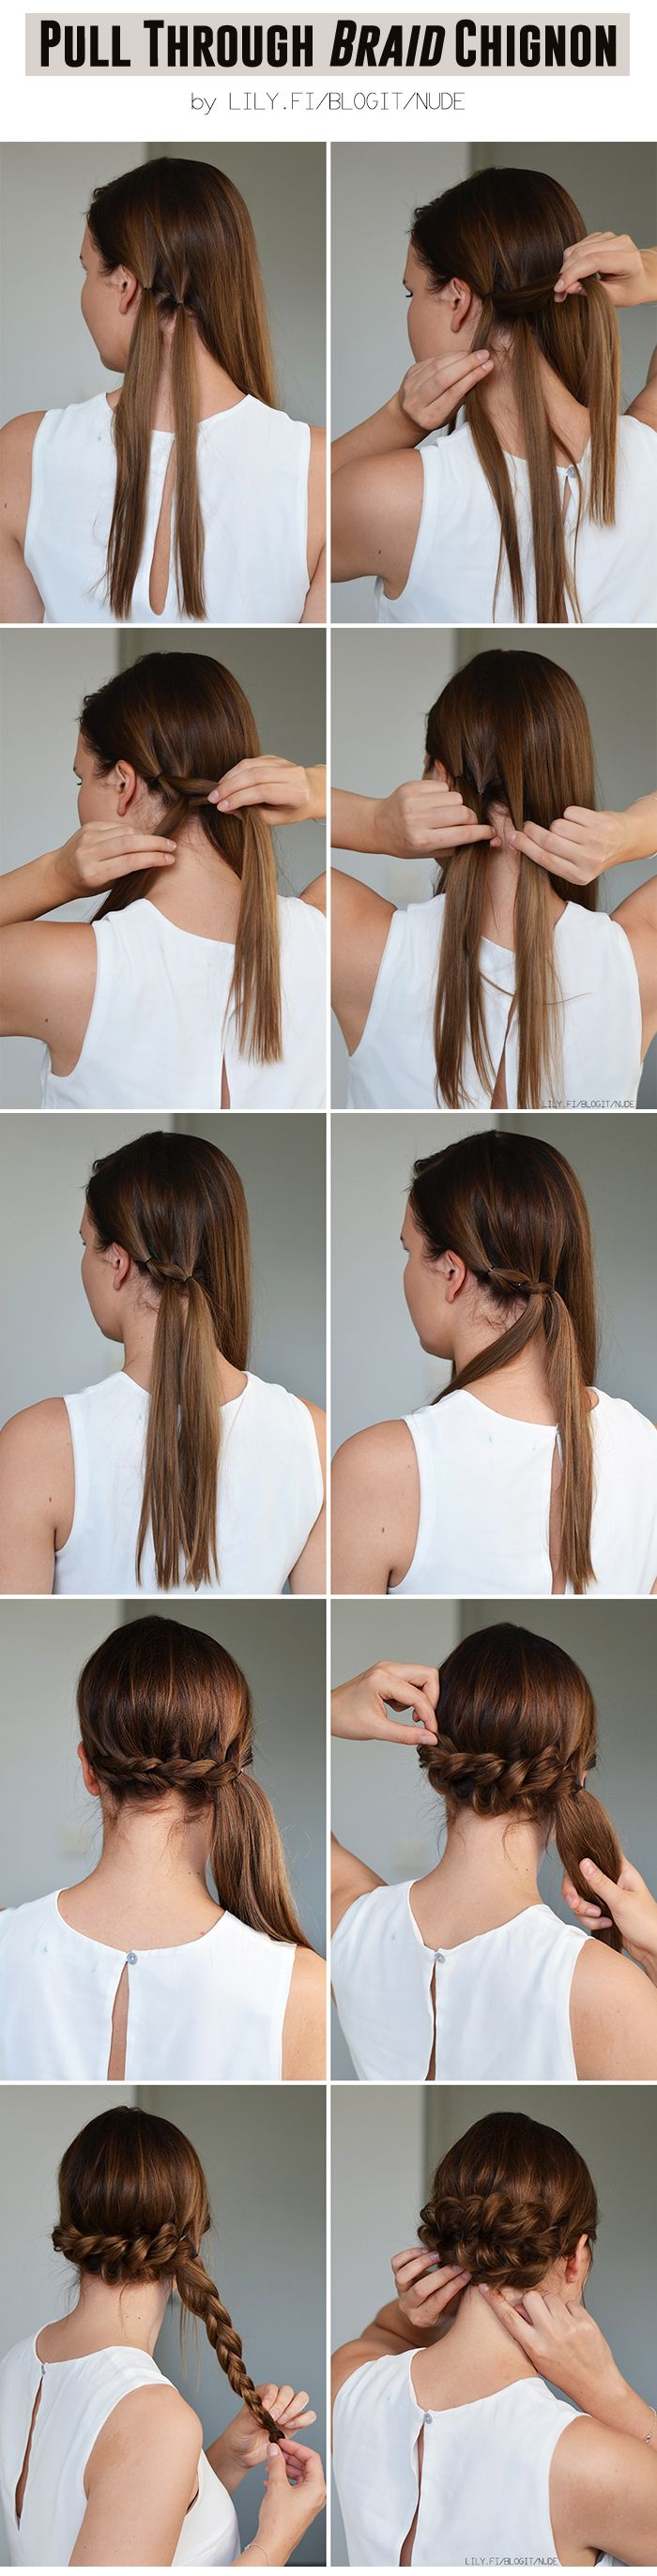 Easy #Braided Hairstyles #Tutorials #fishtail braid #SchnellerDutt #Dutt…